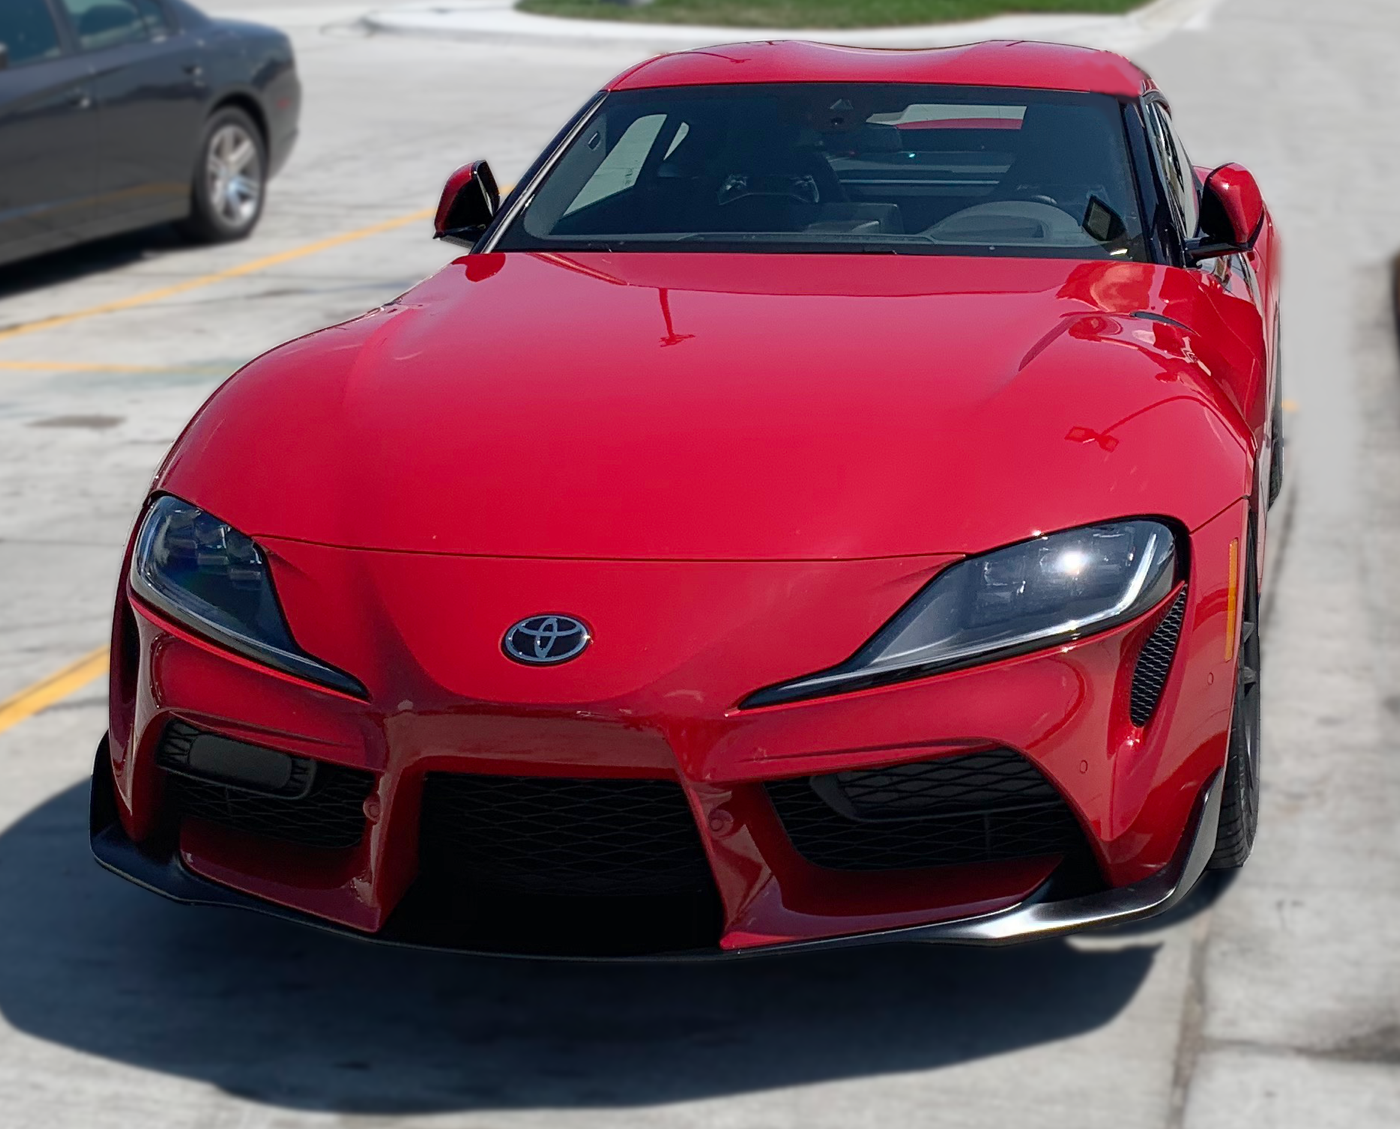 2020 Toyota GR Supra Launch Edition head on KC Test Drive